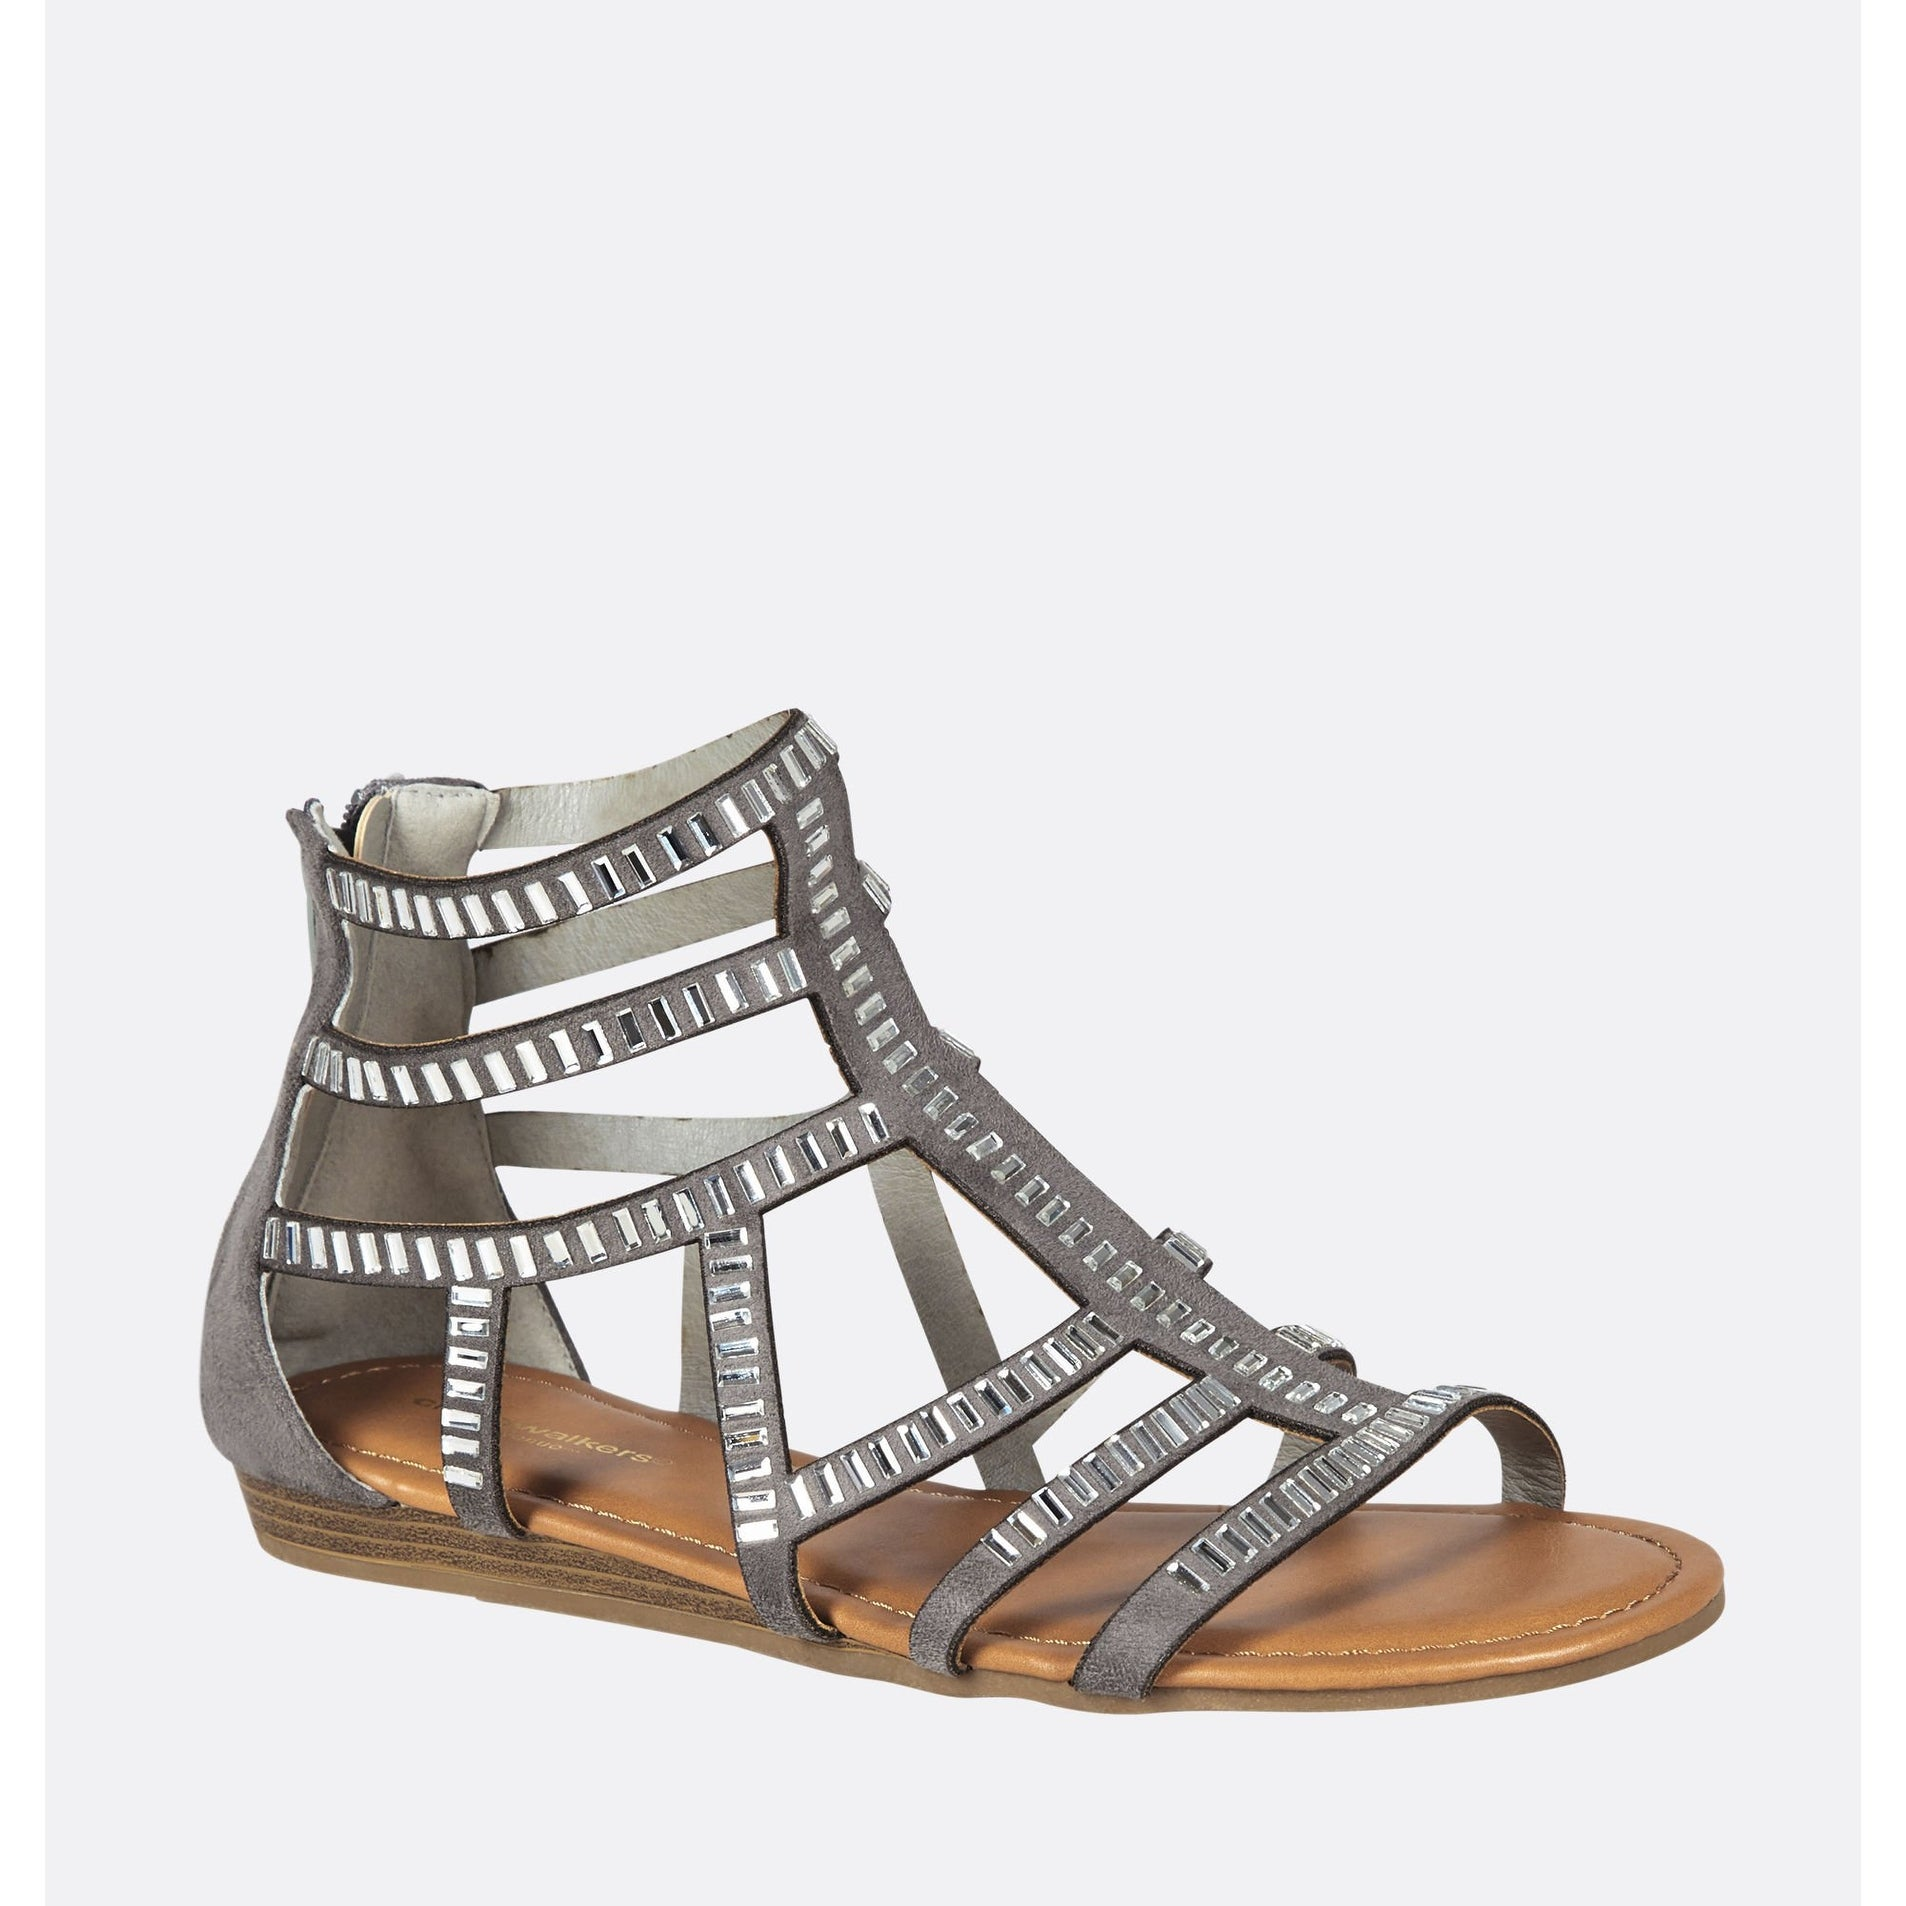 88140fc3010 Shop AVENUE Women s Kriss Studded Gladiator Sandal - Free Shipping ...